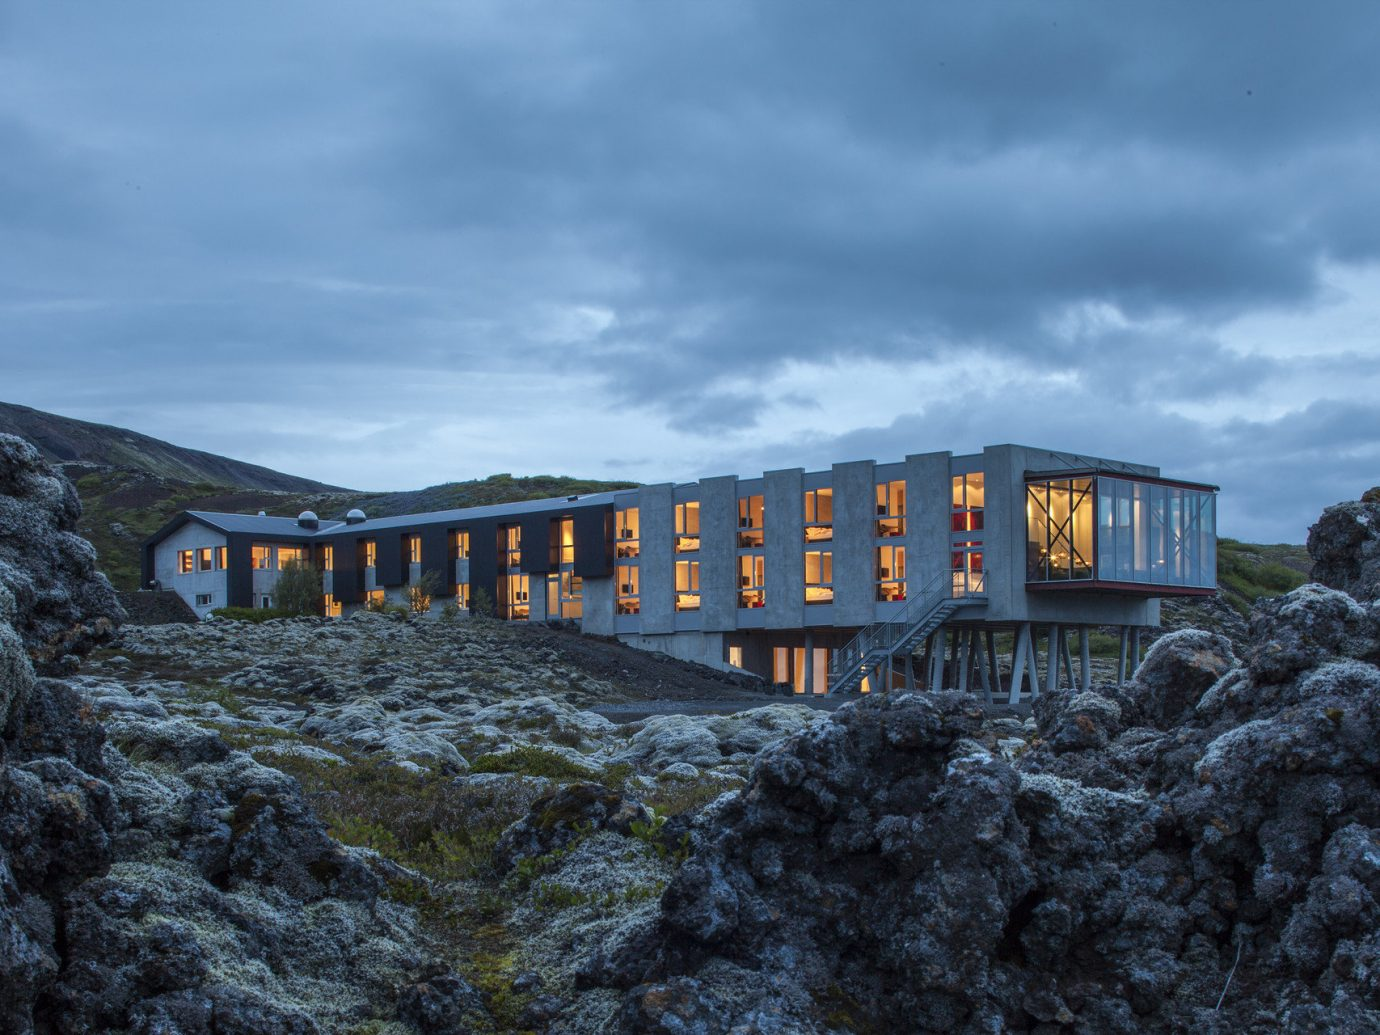 Architecture Boutique calm clouds cloudy contemporary Design dreary Exterior Hotels Iceland isolation lights Luxury majestic Modern Mountains Nature Outdoors private remote rock Rocks Scenic views serene Style + Design Trip Ideas unique view sky train outdoor track transport yellow mountain vehicle rolling stock traveling rail transport bridge railroad engine